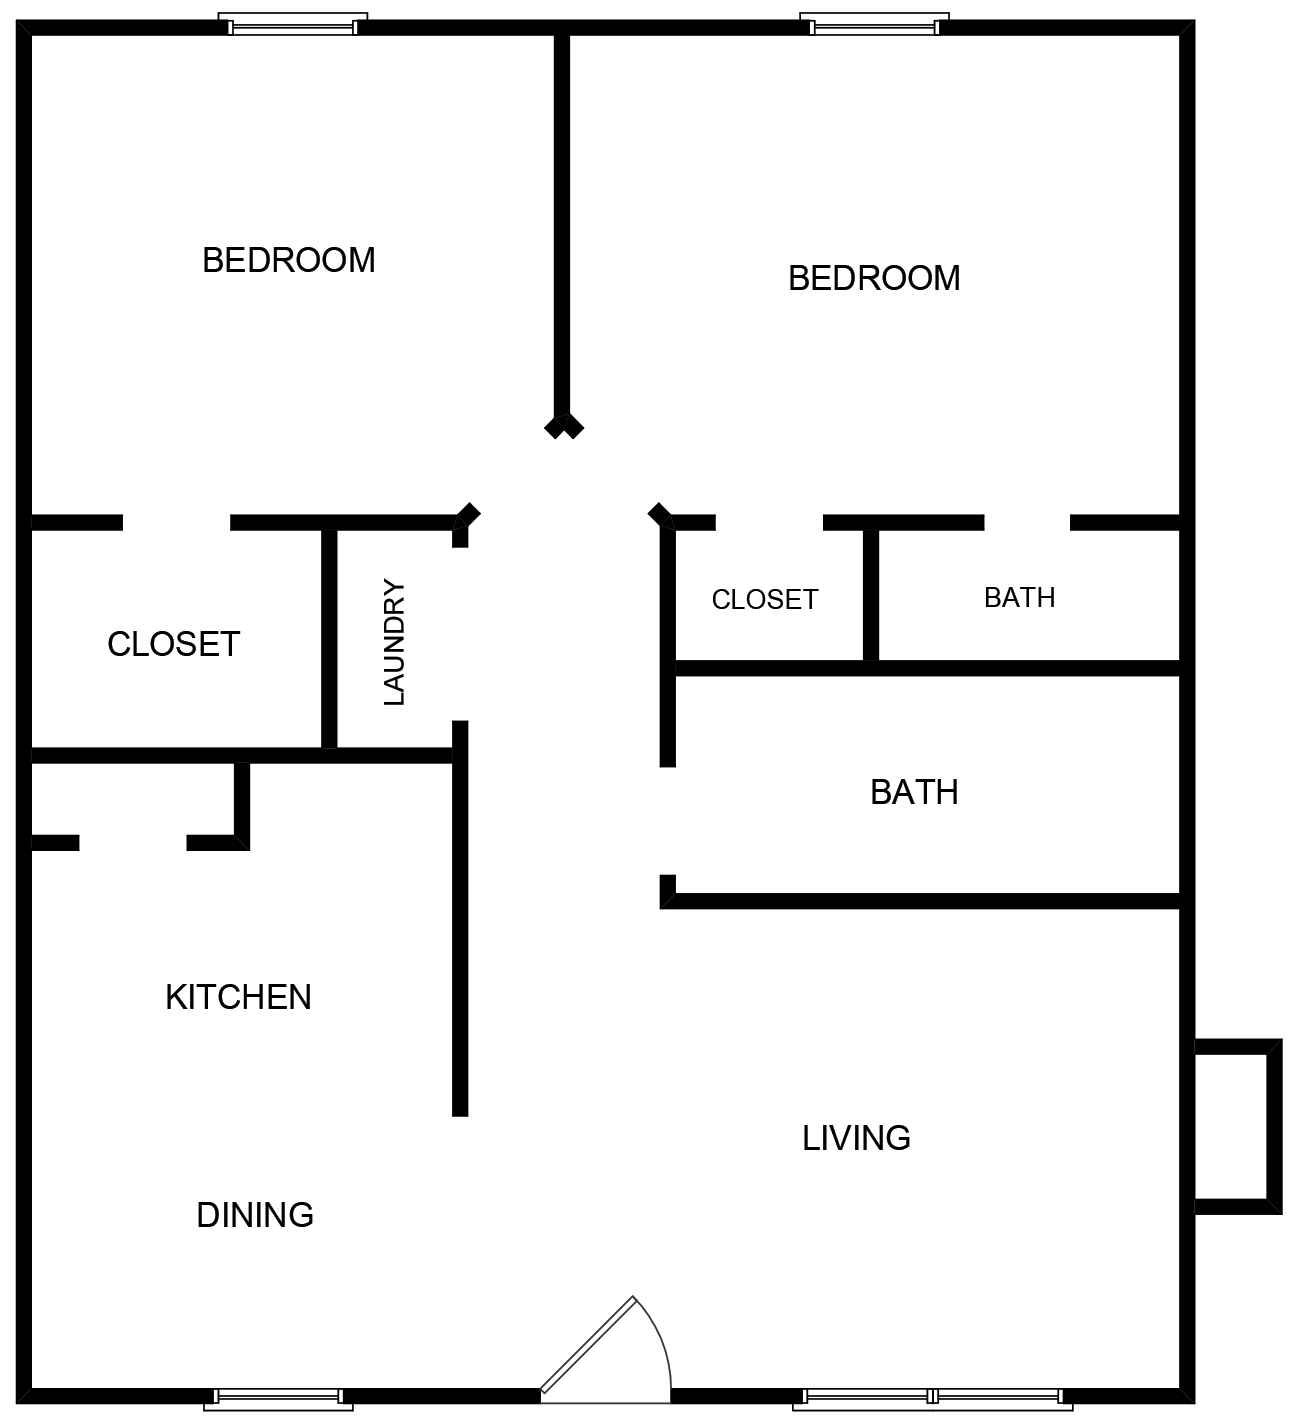 2 Bedroom 2 Baths - Duplex